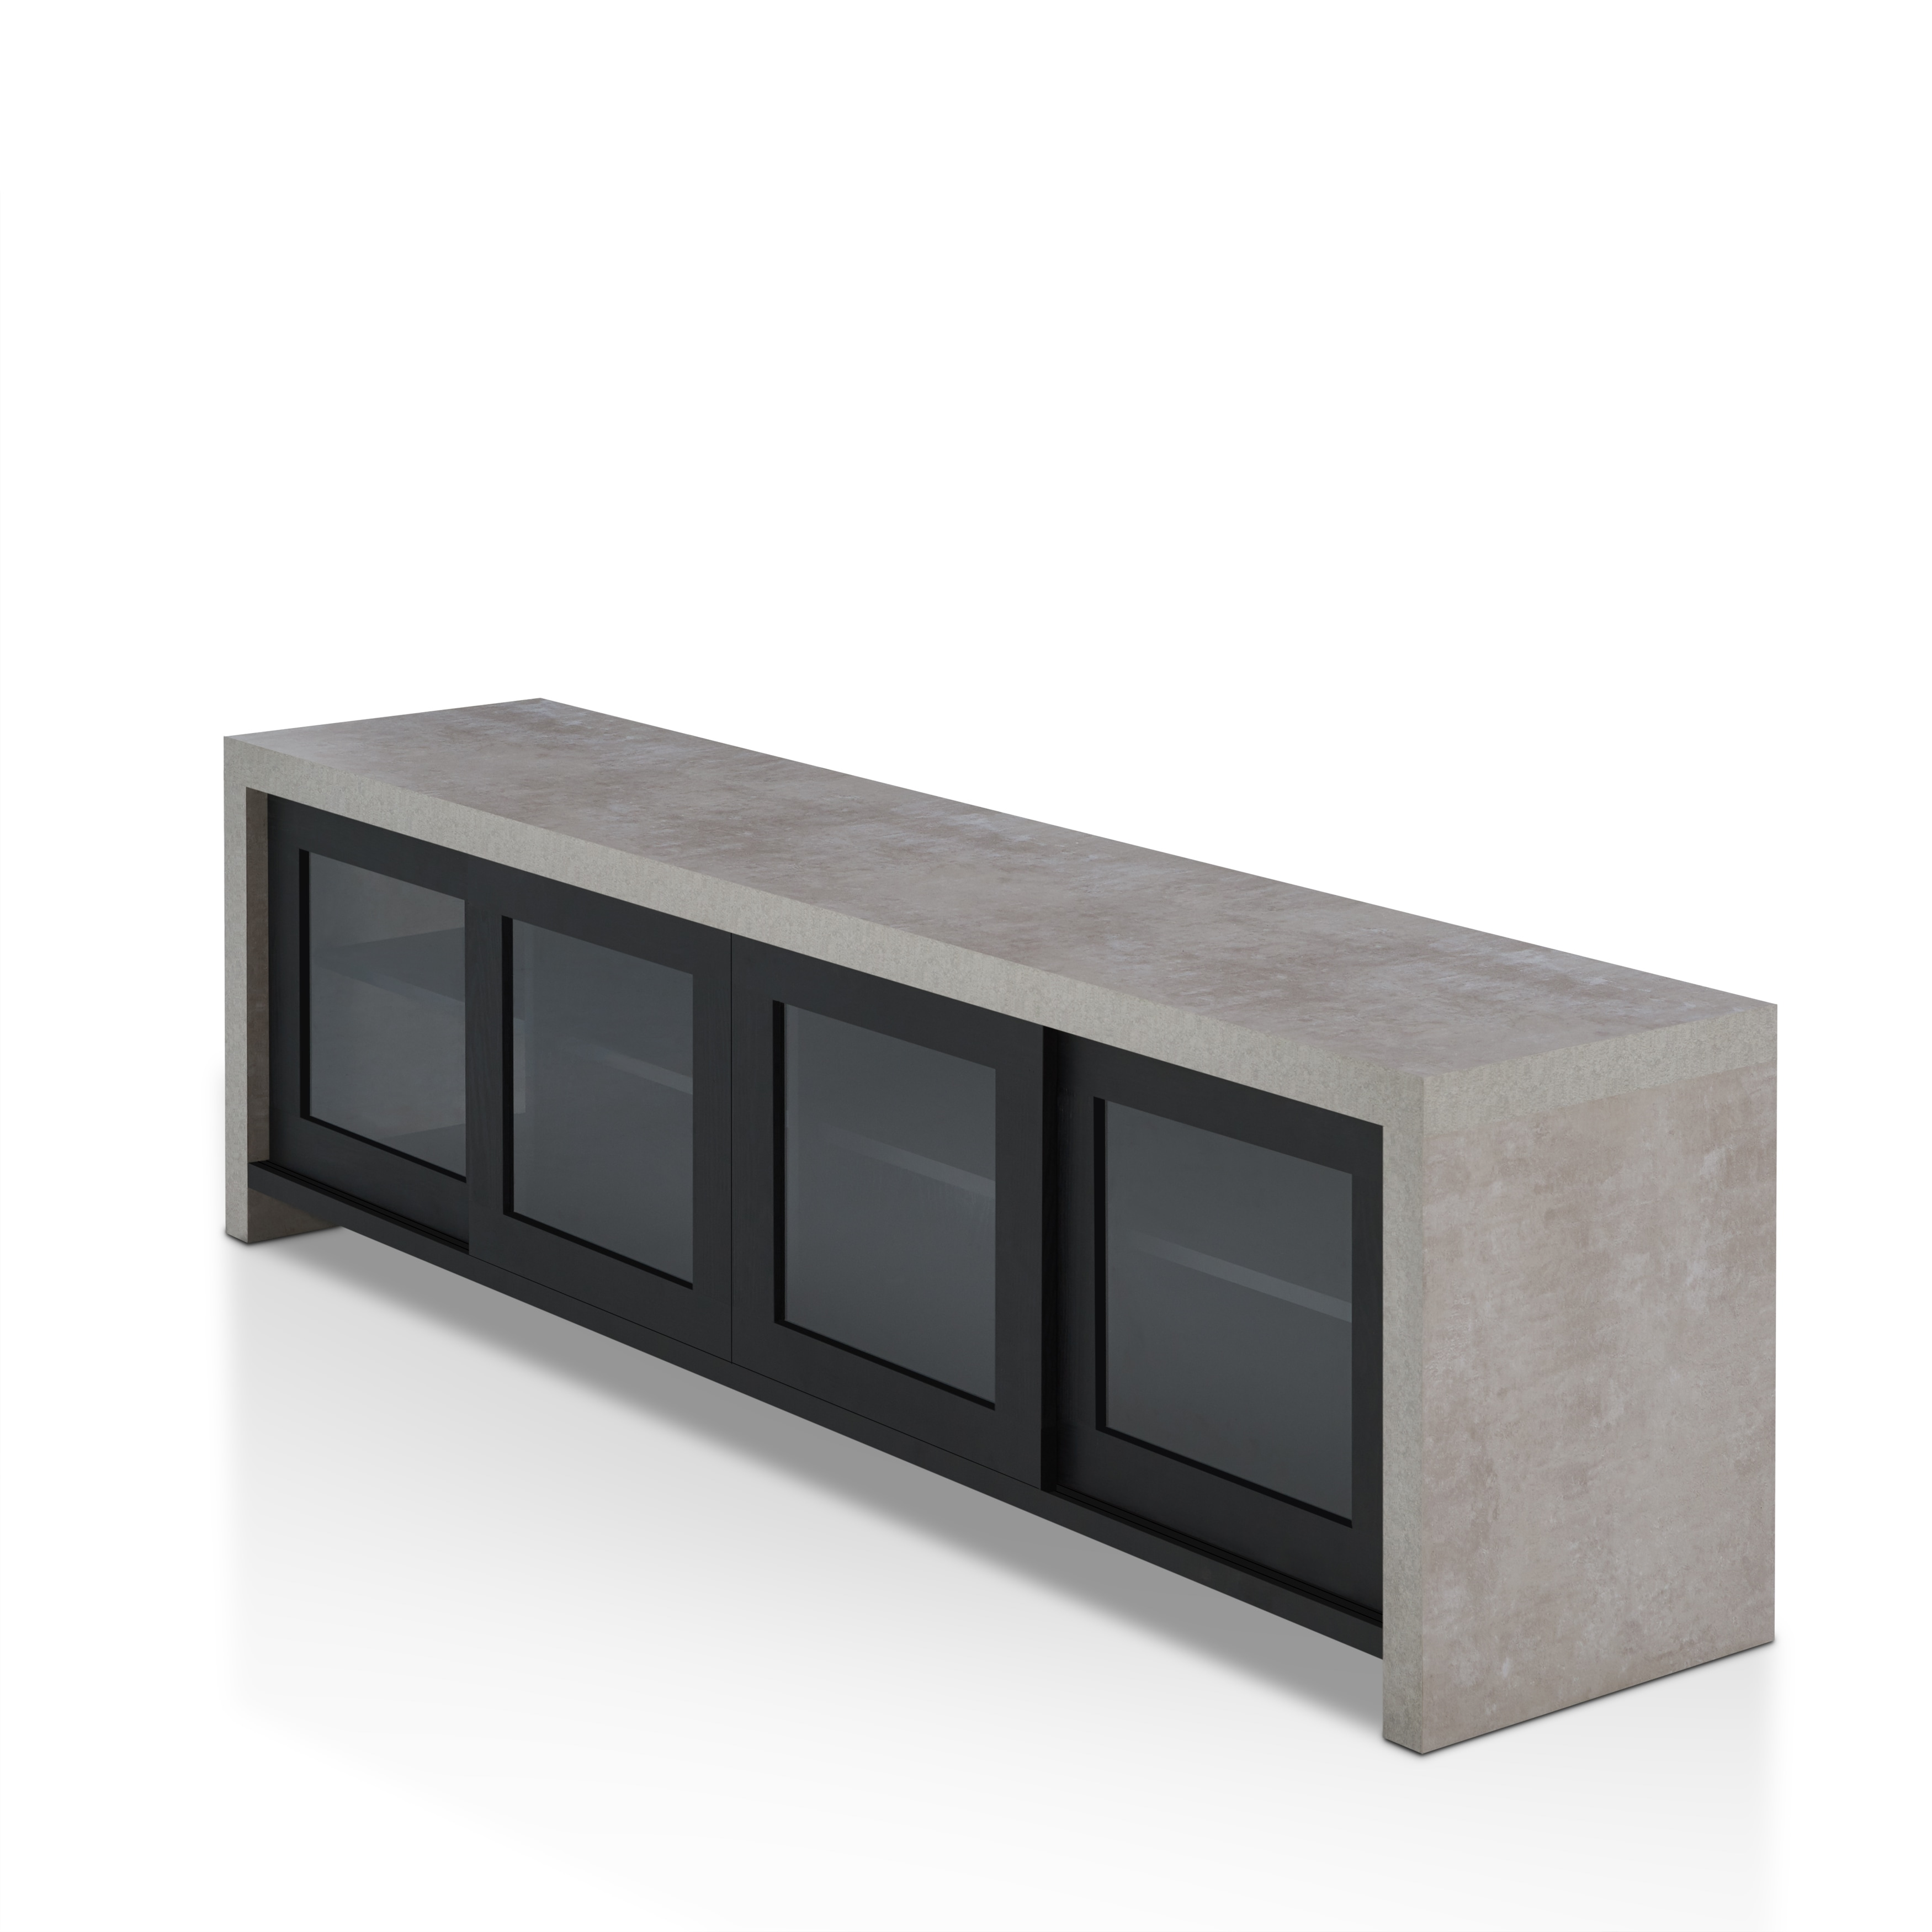 Nice Furniture Of America Haylin Industrial Cement Like Multi Storage TV Stand    Free Shipping Today   Overstock.com   23014433